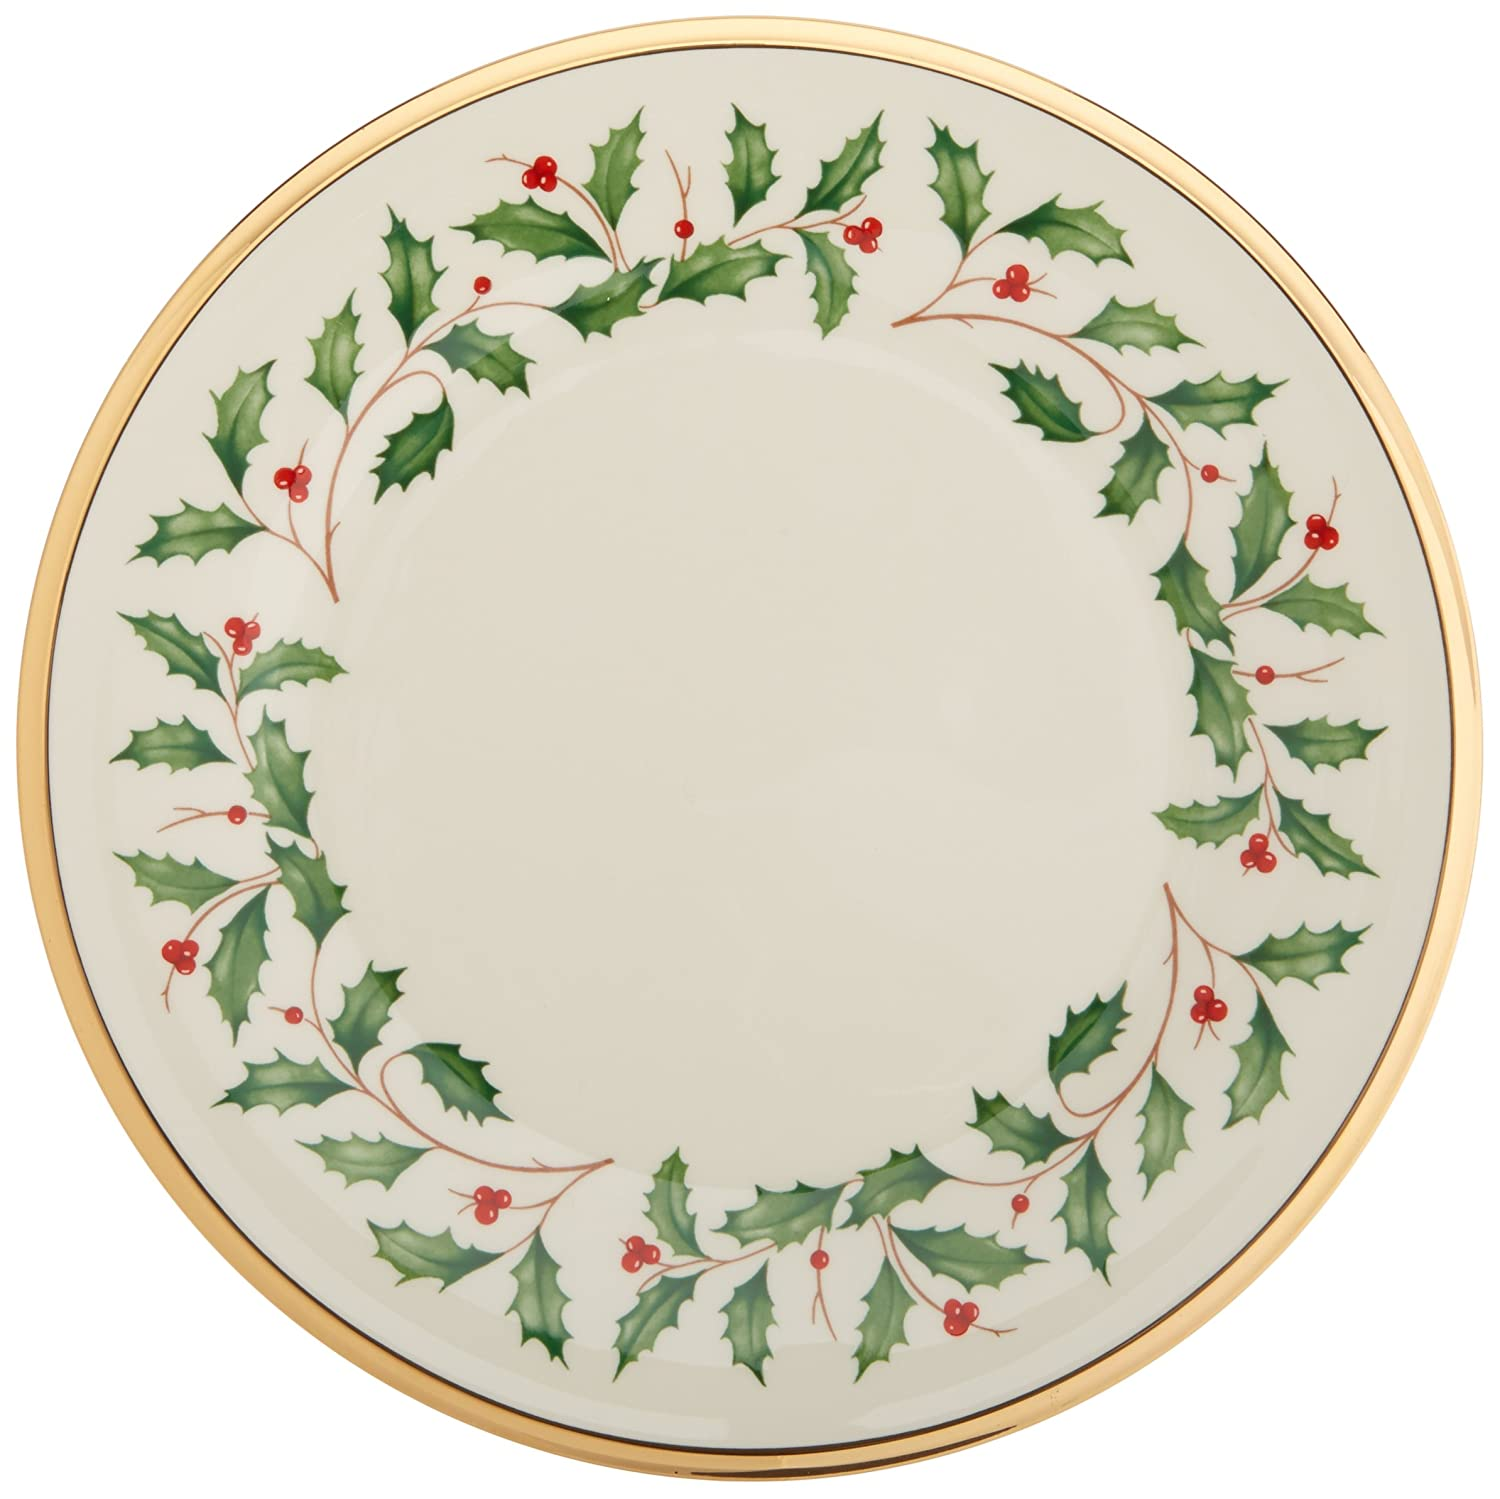 Amazon.com Lenox Holiday Salad Plate Holiday Lenox China Kitchen \u0026 Dining  sc 1 st  Amazon.com & Amazon.com: Lenox Holiday Salad Plate: Holiday Lenox China: Kitchen ...